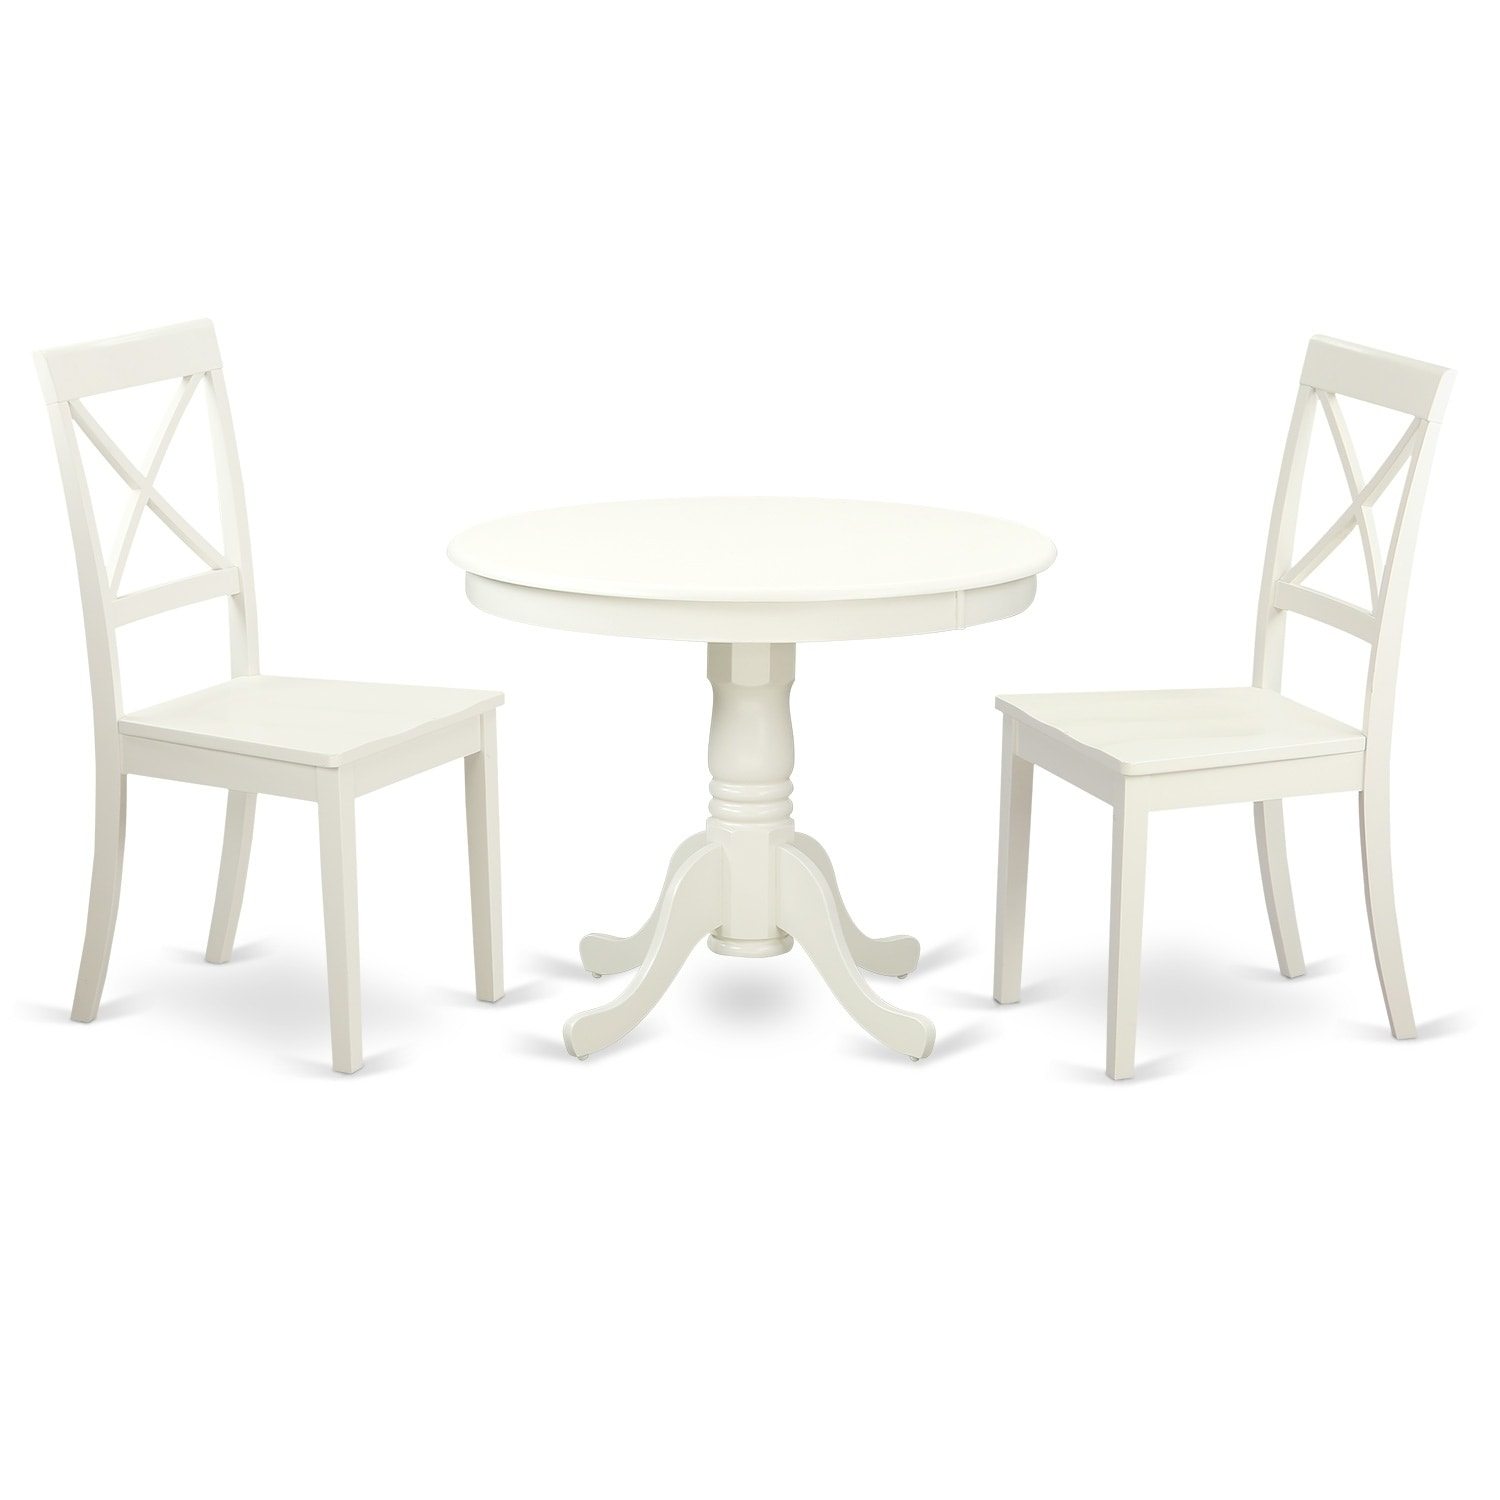 Kitchen Chairs Wood Anbo Lwh W 3 Pc Set Table And 2 Wood Kitchen Chairs In Linen White